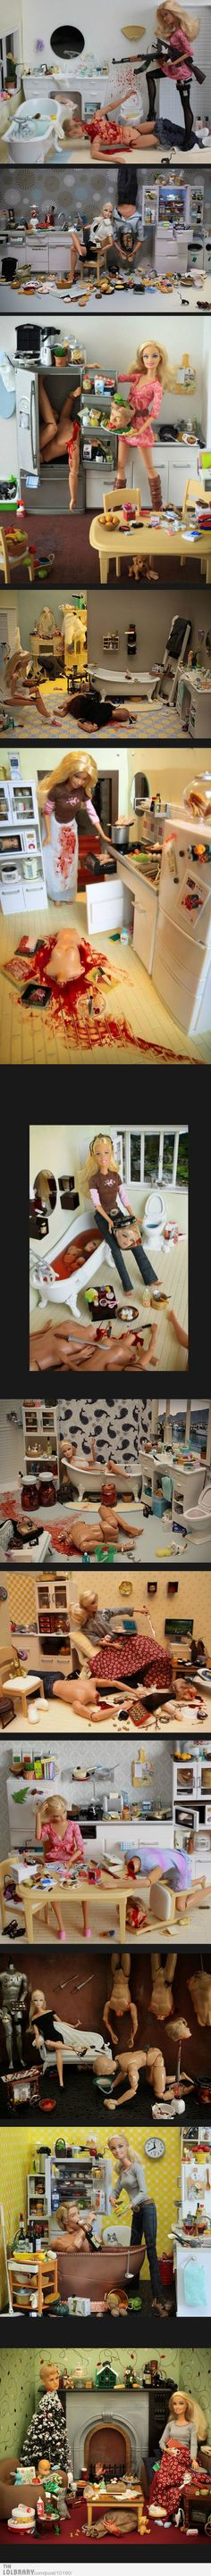 Barbie the Serial Killer